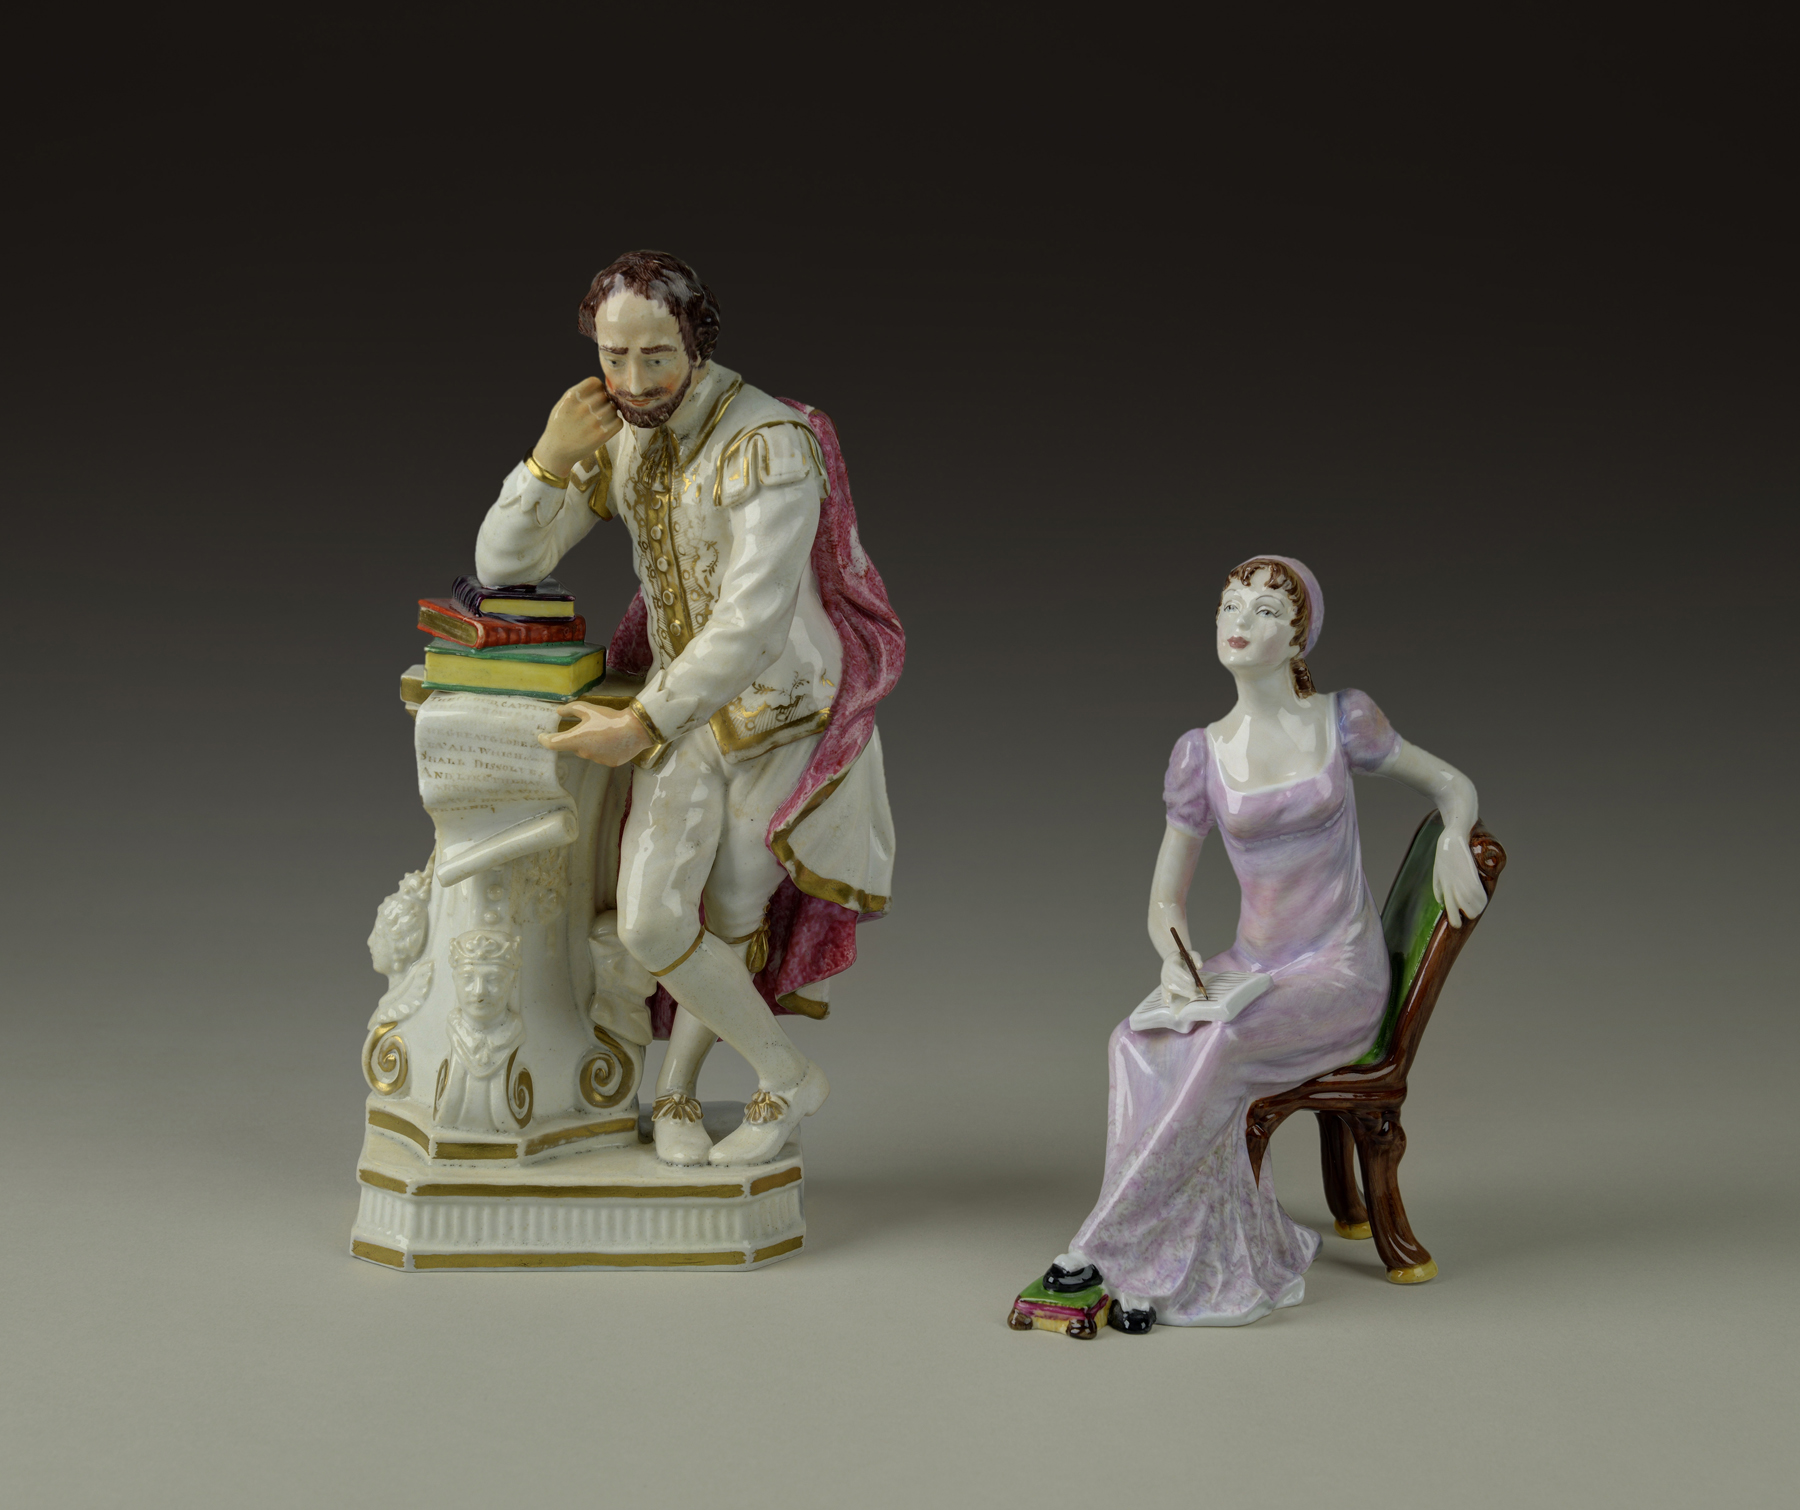 Porcelain figurine of William Shakespeare and Porcelain Figurine of Jane Austen